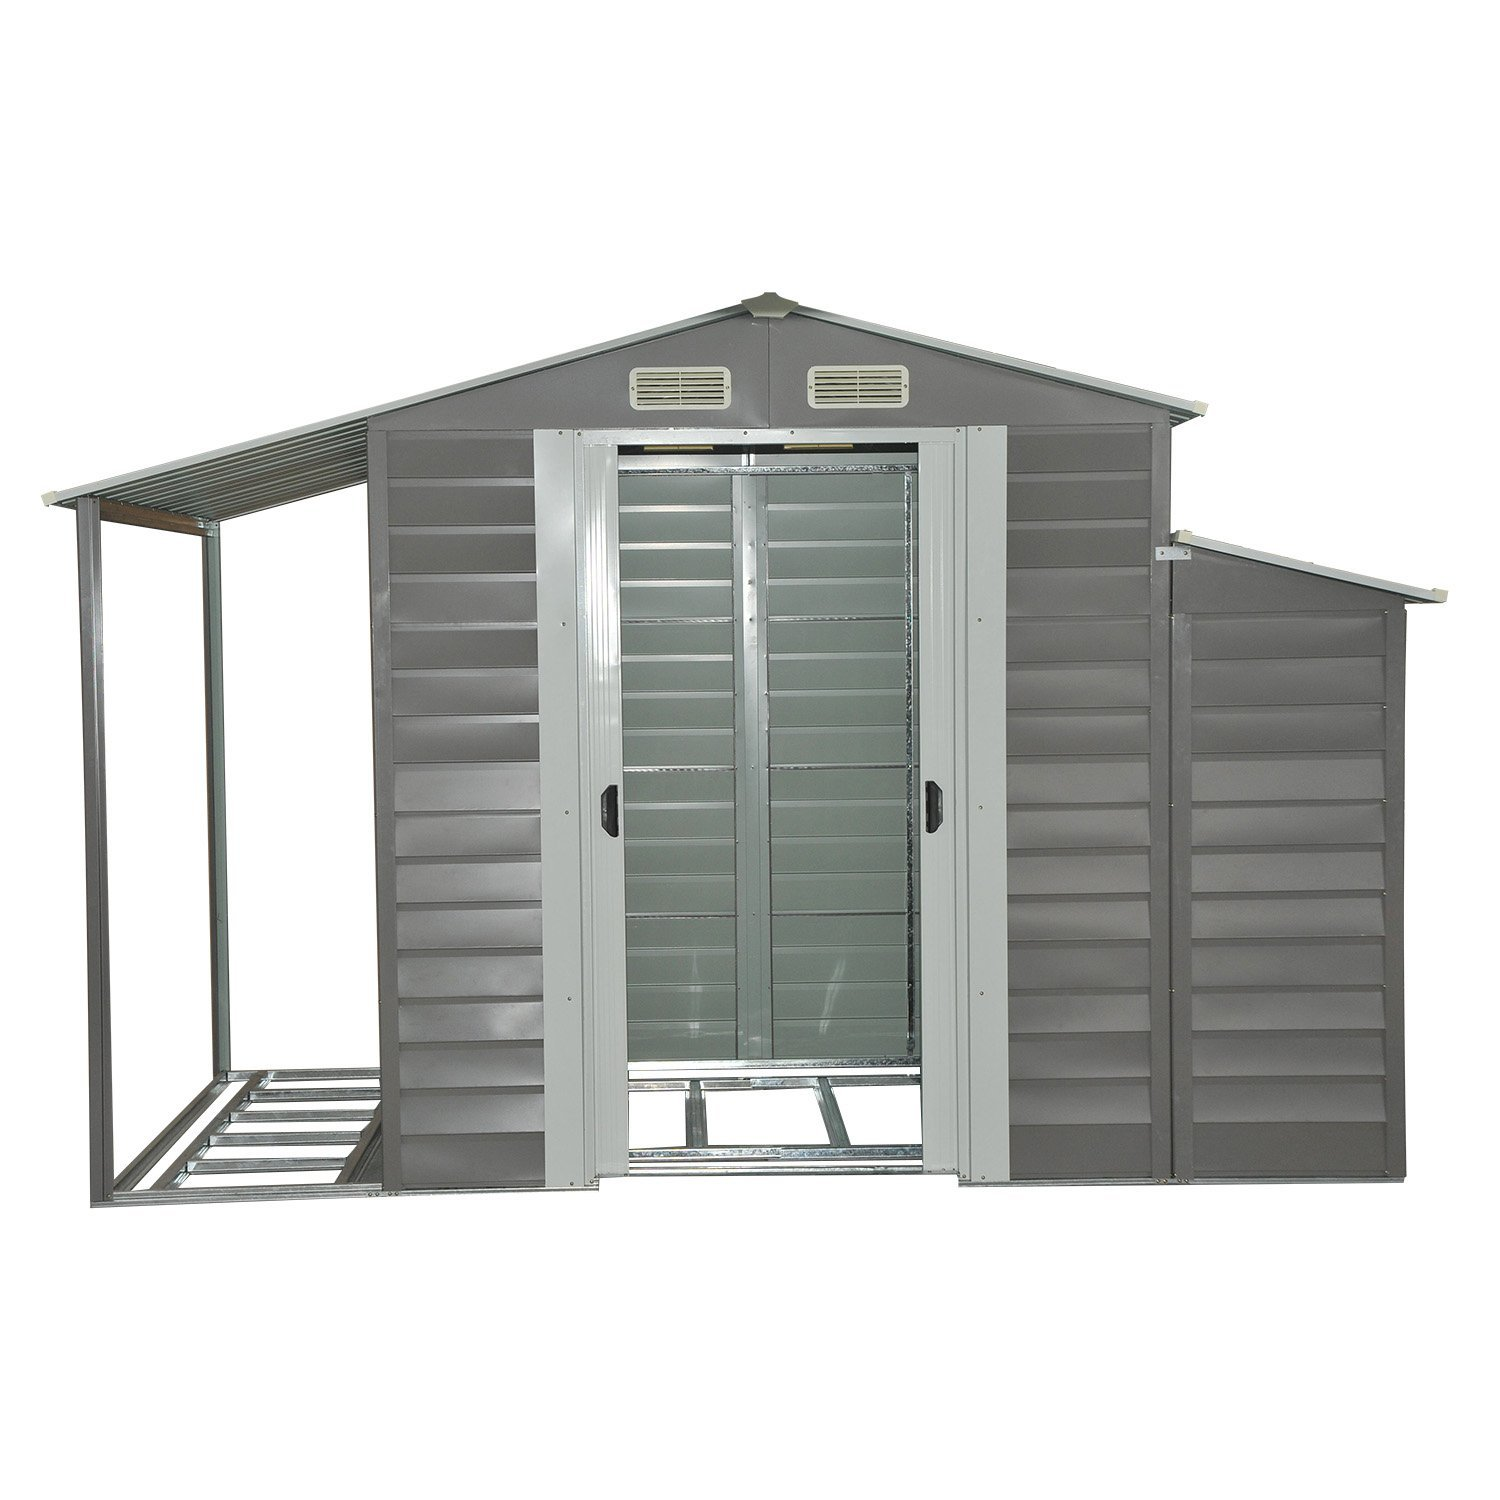 Outsunny Outdoor Metal Storage Shed